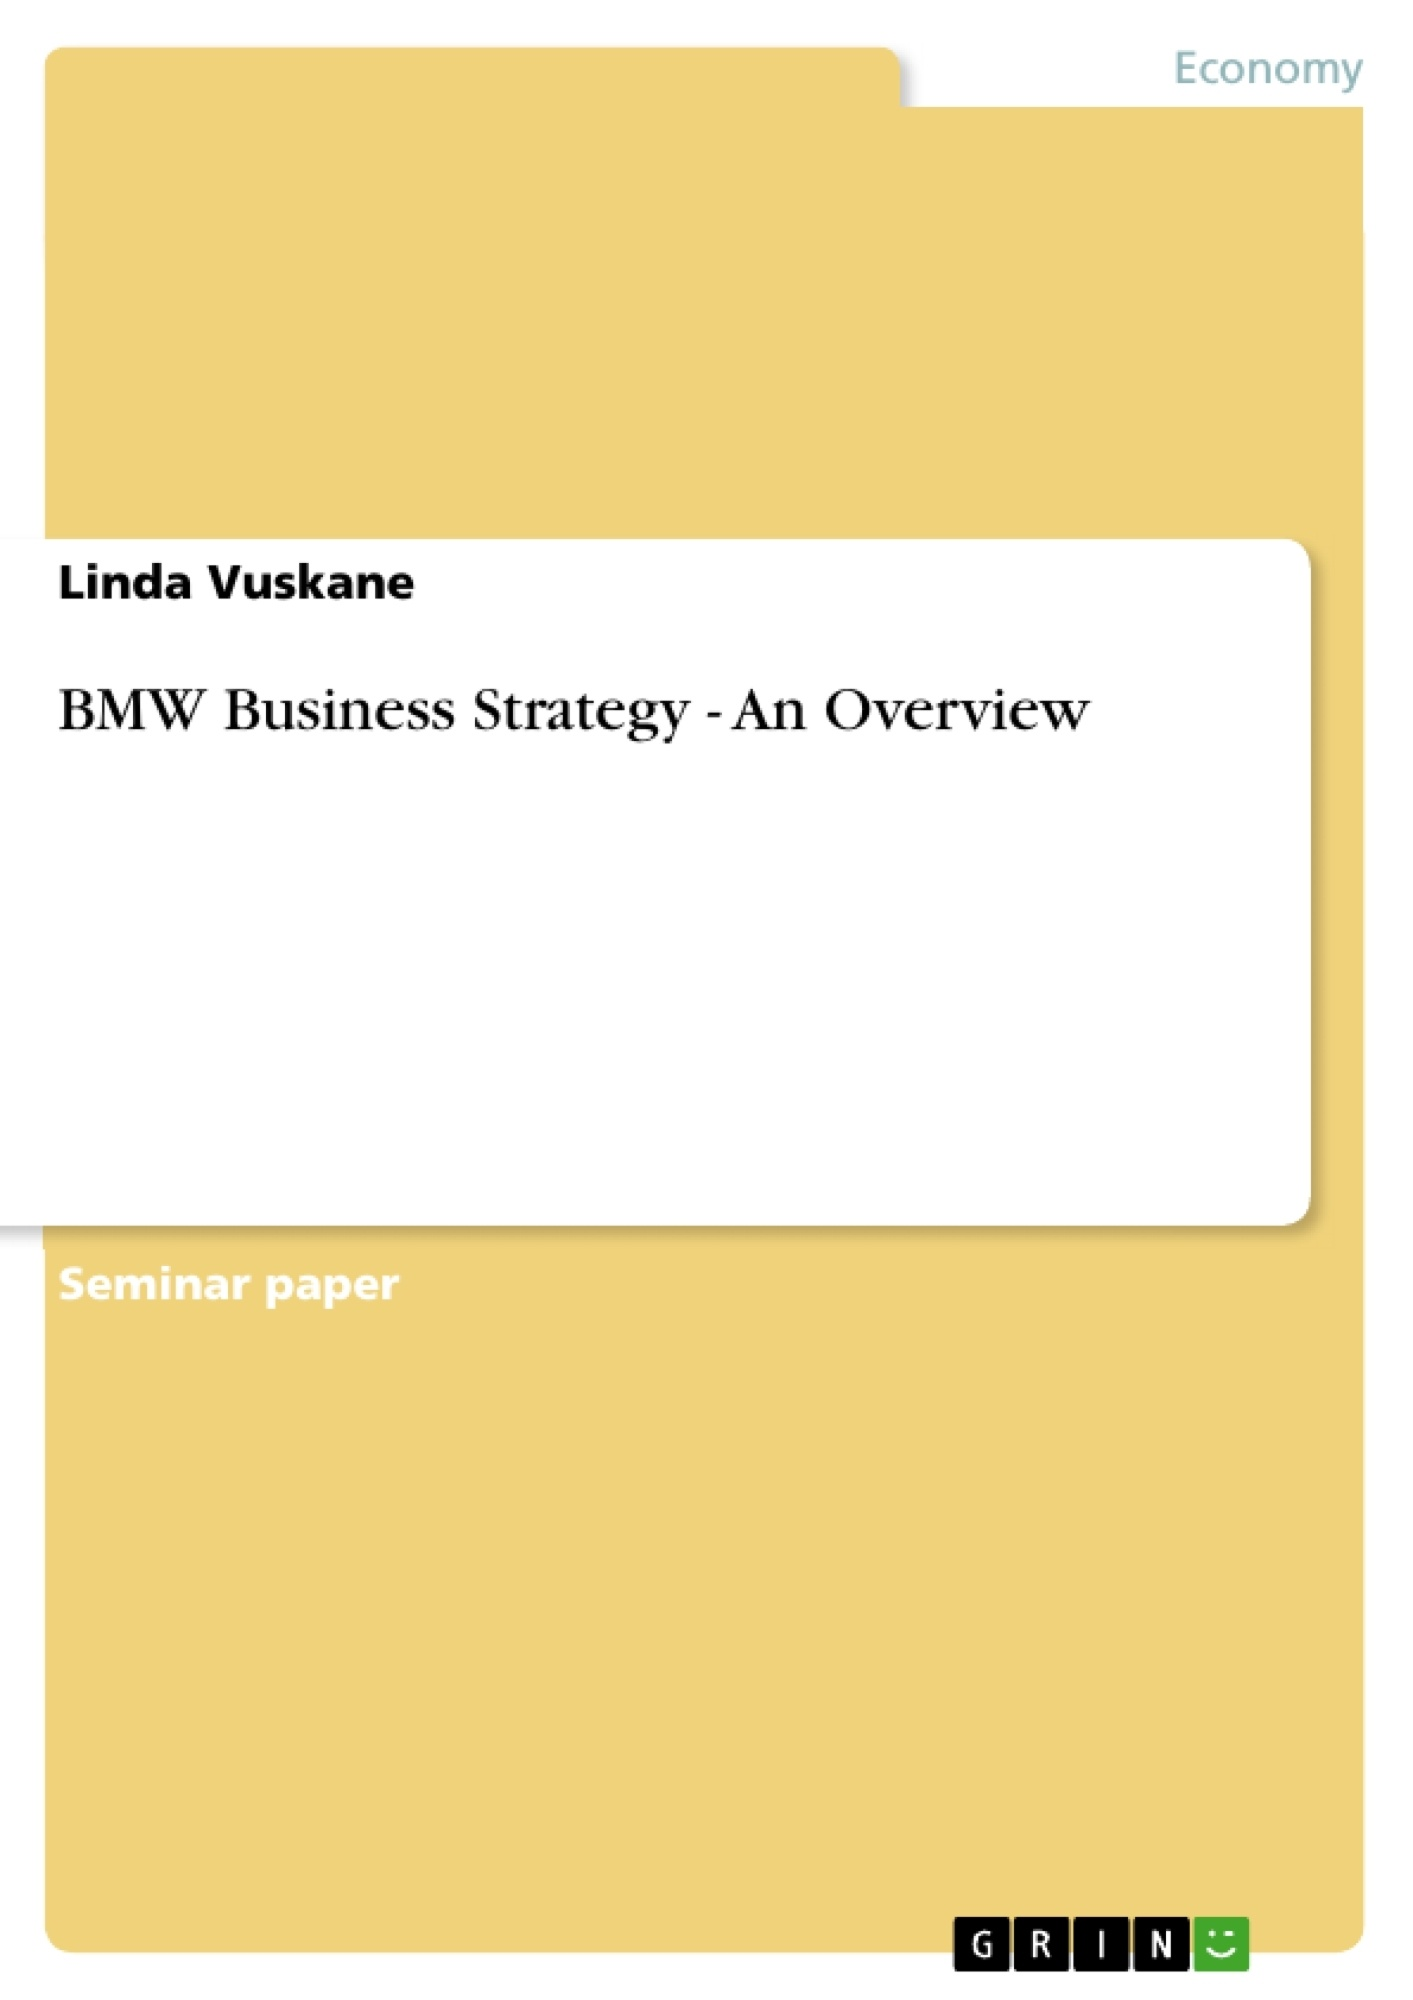 bmw business strategy essay Check this list of fresh and intriguing business essay questions like • textile the importance of innovation using research and real-life examples and follow a persuasive essay format for a dream business essay the most effective strategy of supporting local smes is to prevent.